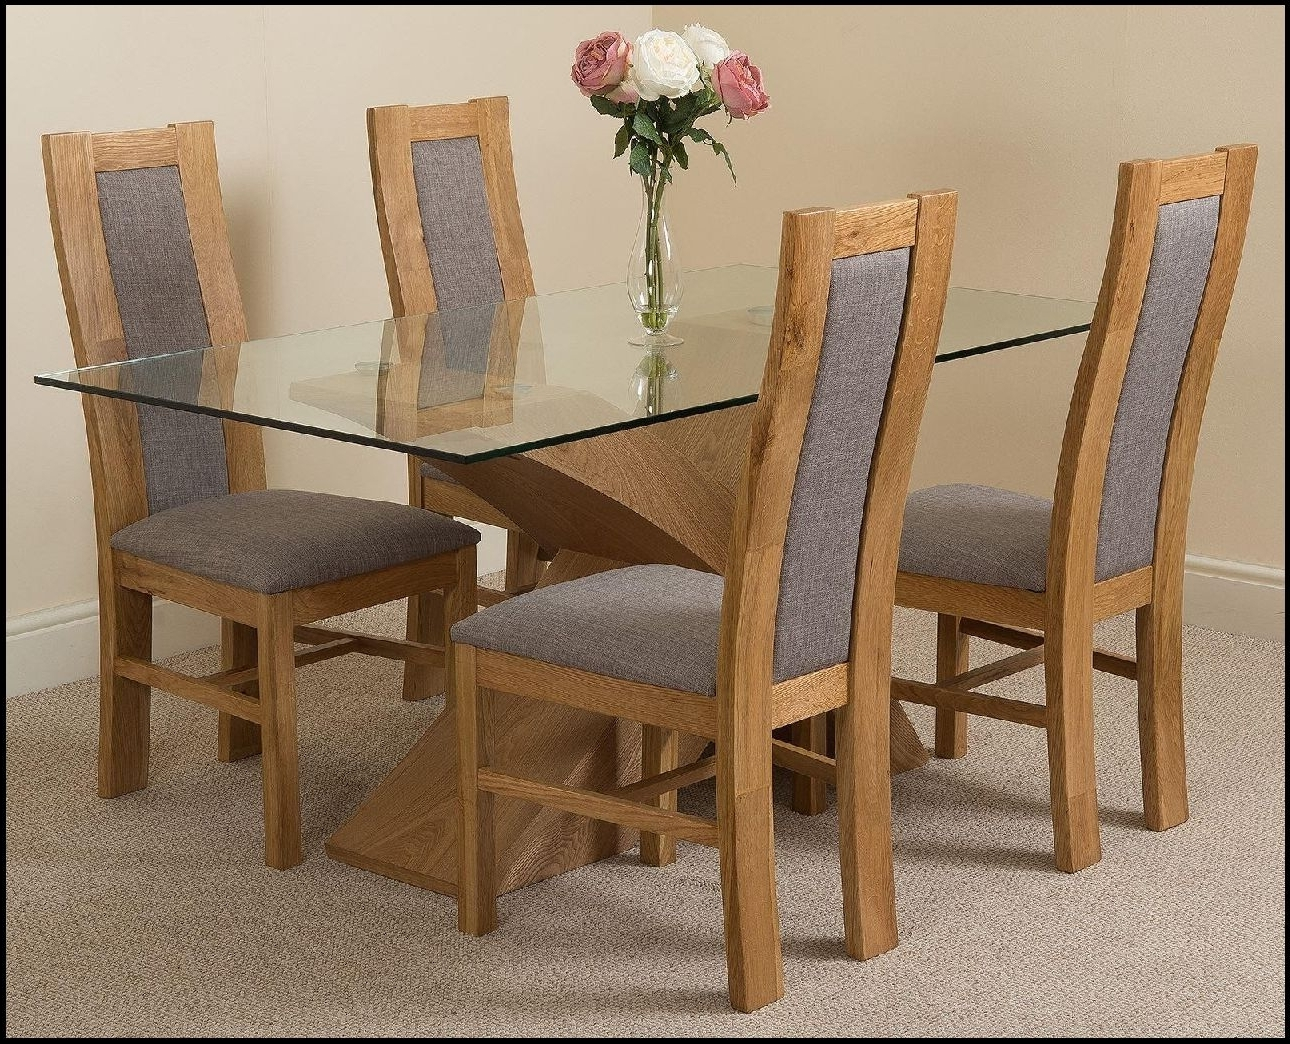 Sitiwhitegroook Pertaining To Oak And Glass Dining Tables Sets (View 14 of 25)